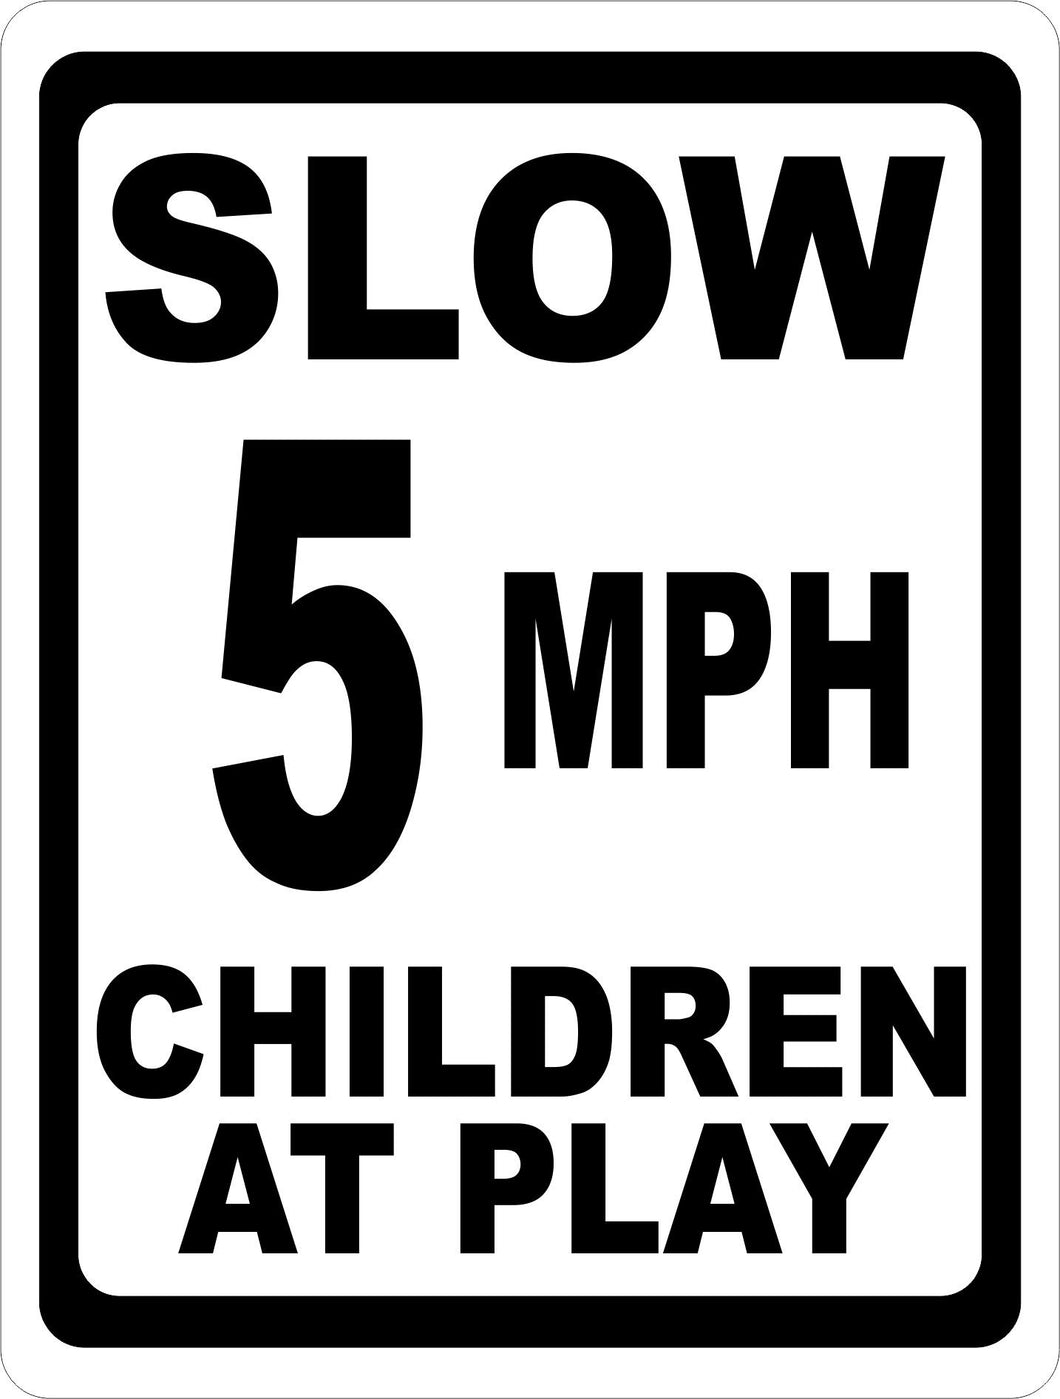 Slow 5 MPH Children at Play Sign - Signs & Decals by SalaGraphics